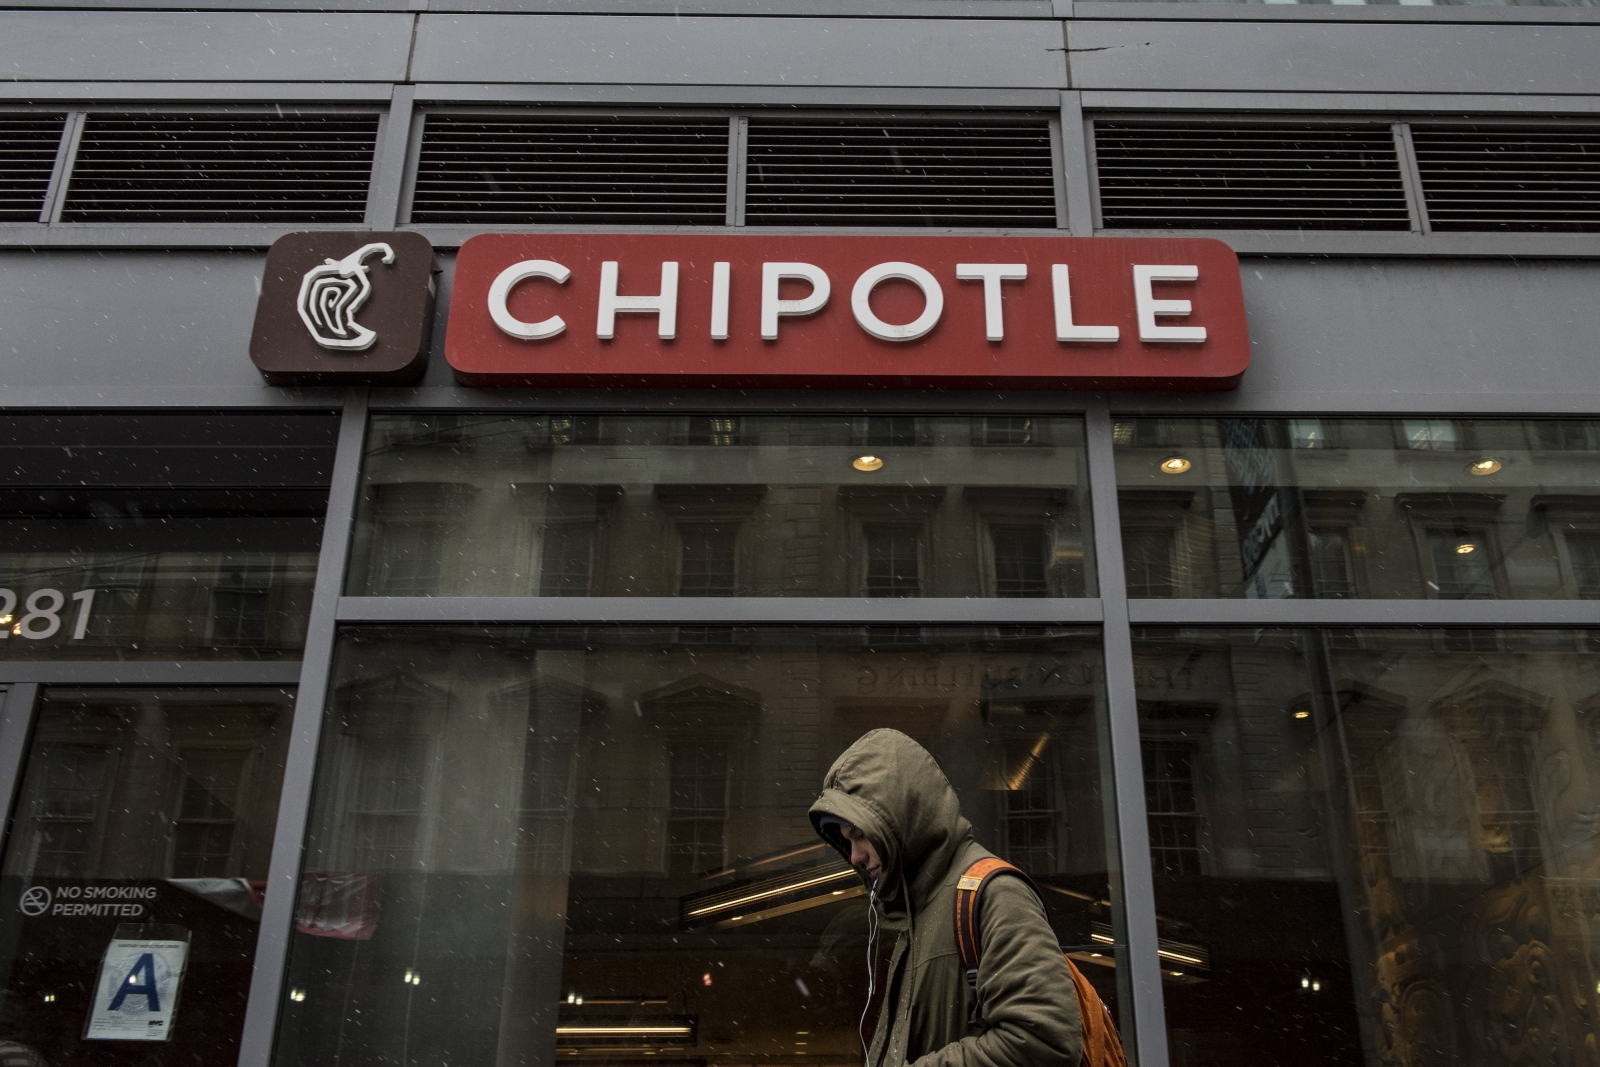 Chipotle Mexican Grill Problems For Chipotle Don't Seem To End As Diners Find